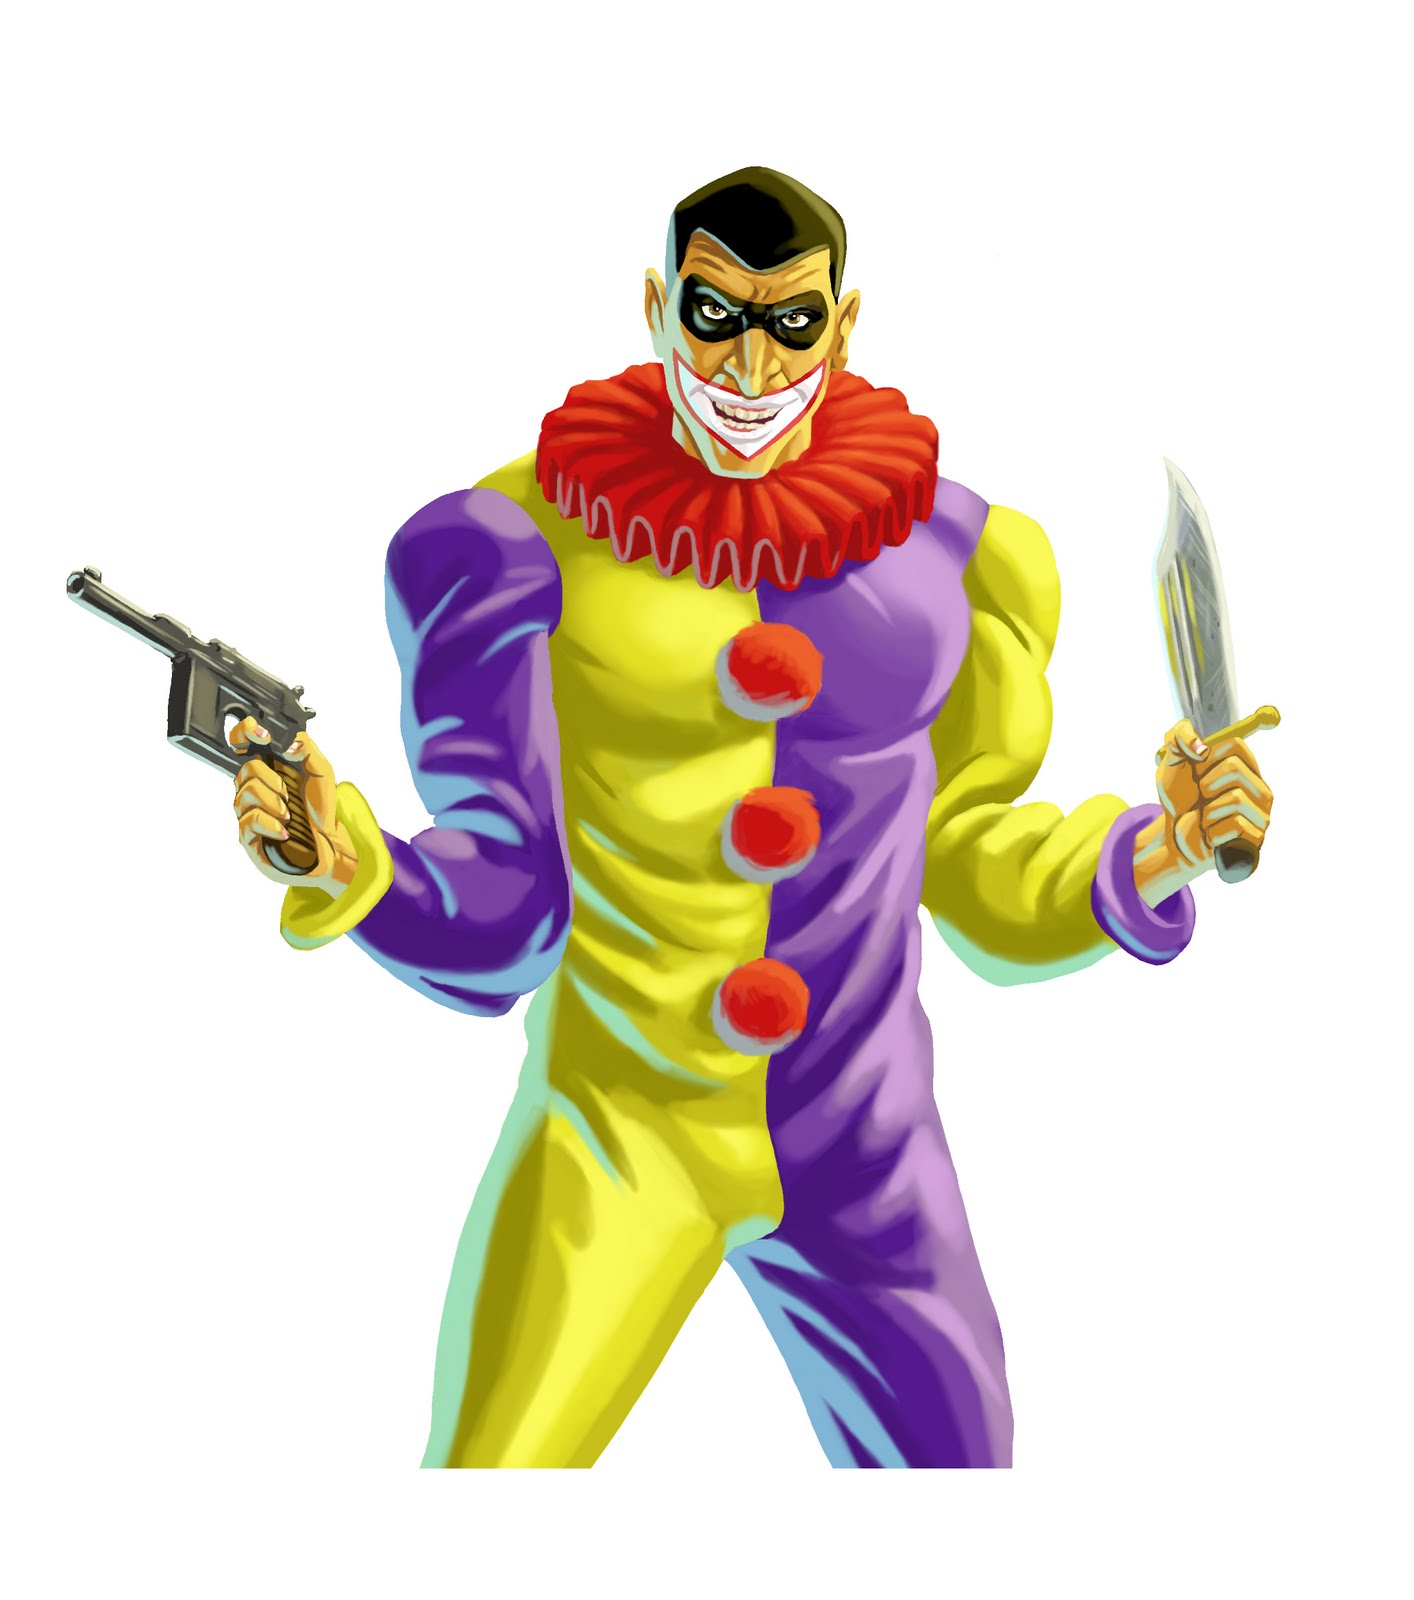 The Phantom S Lair Clowns Toy Crocodiles And Supers Oh My